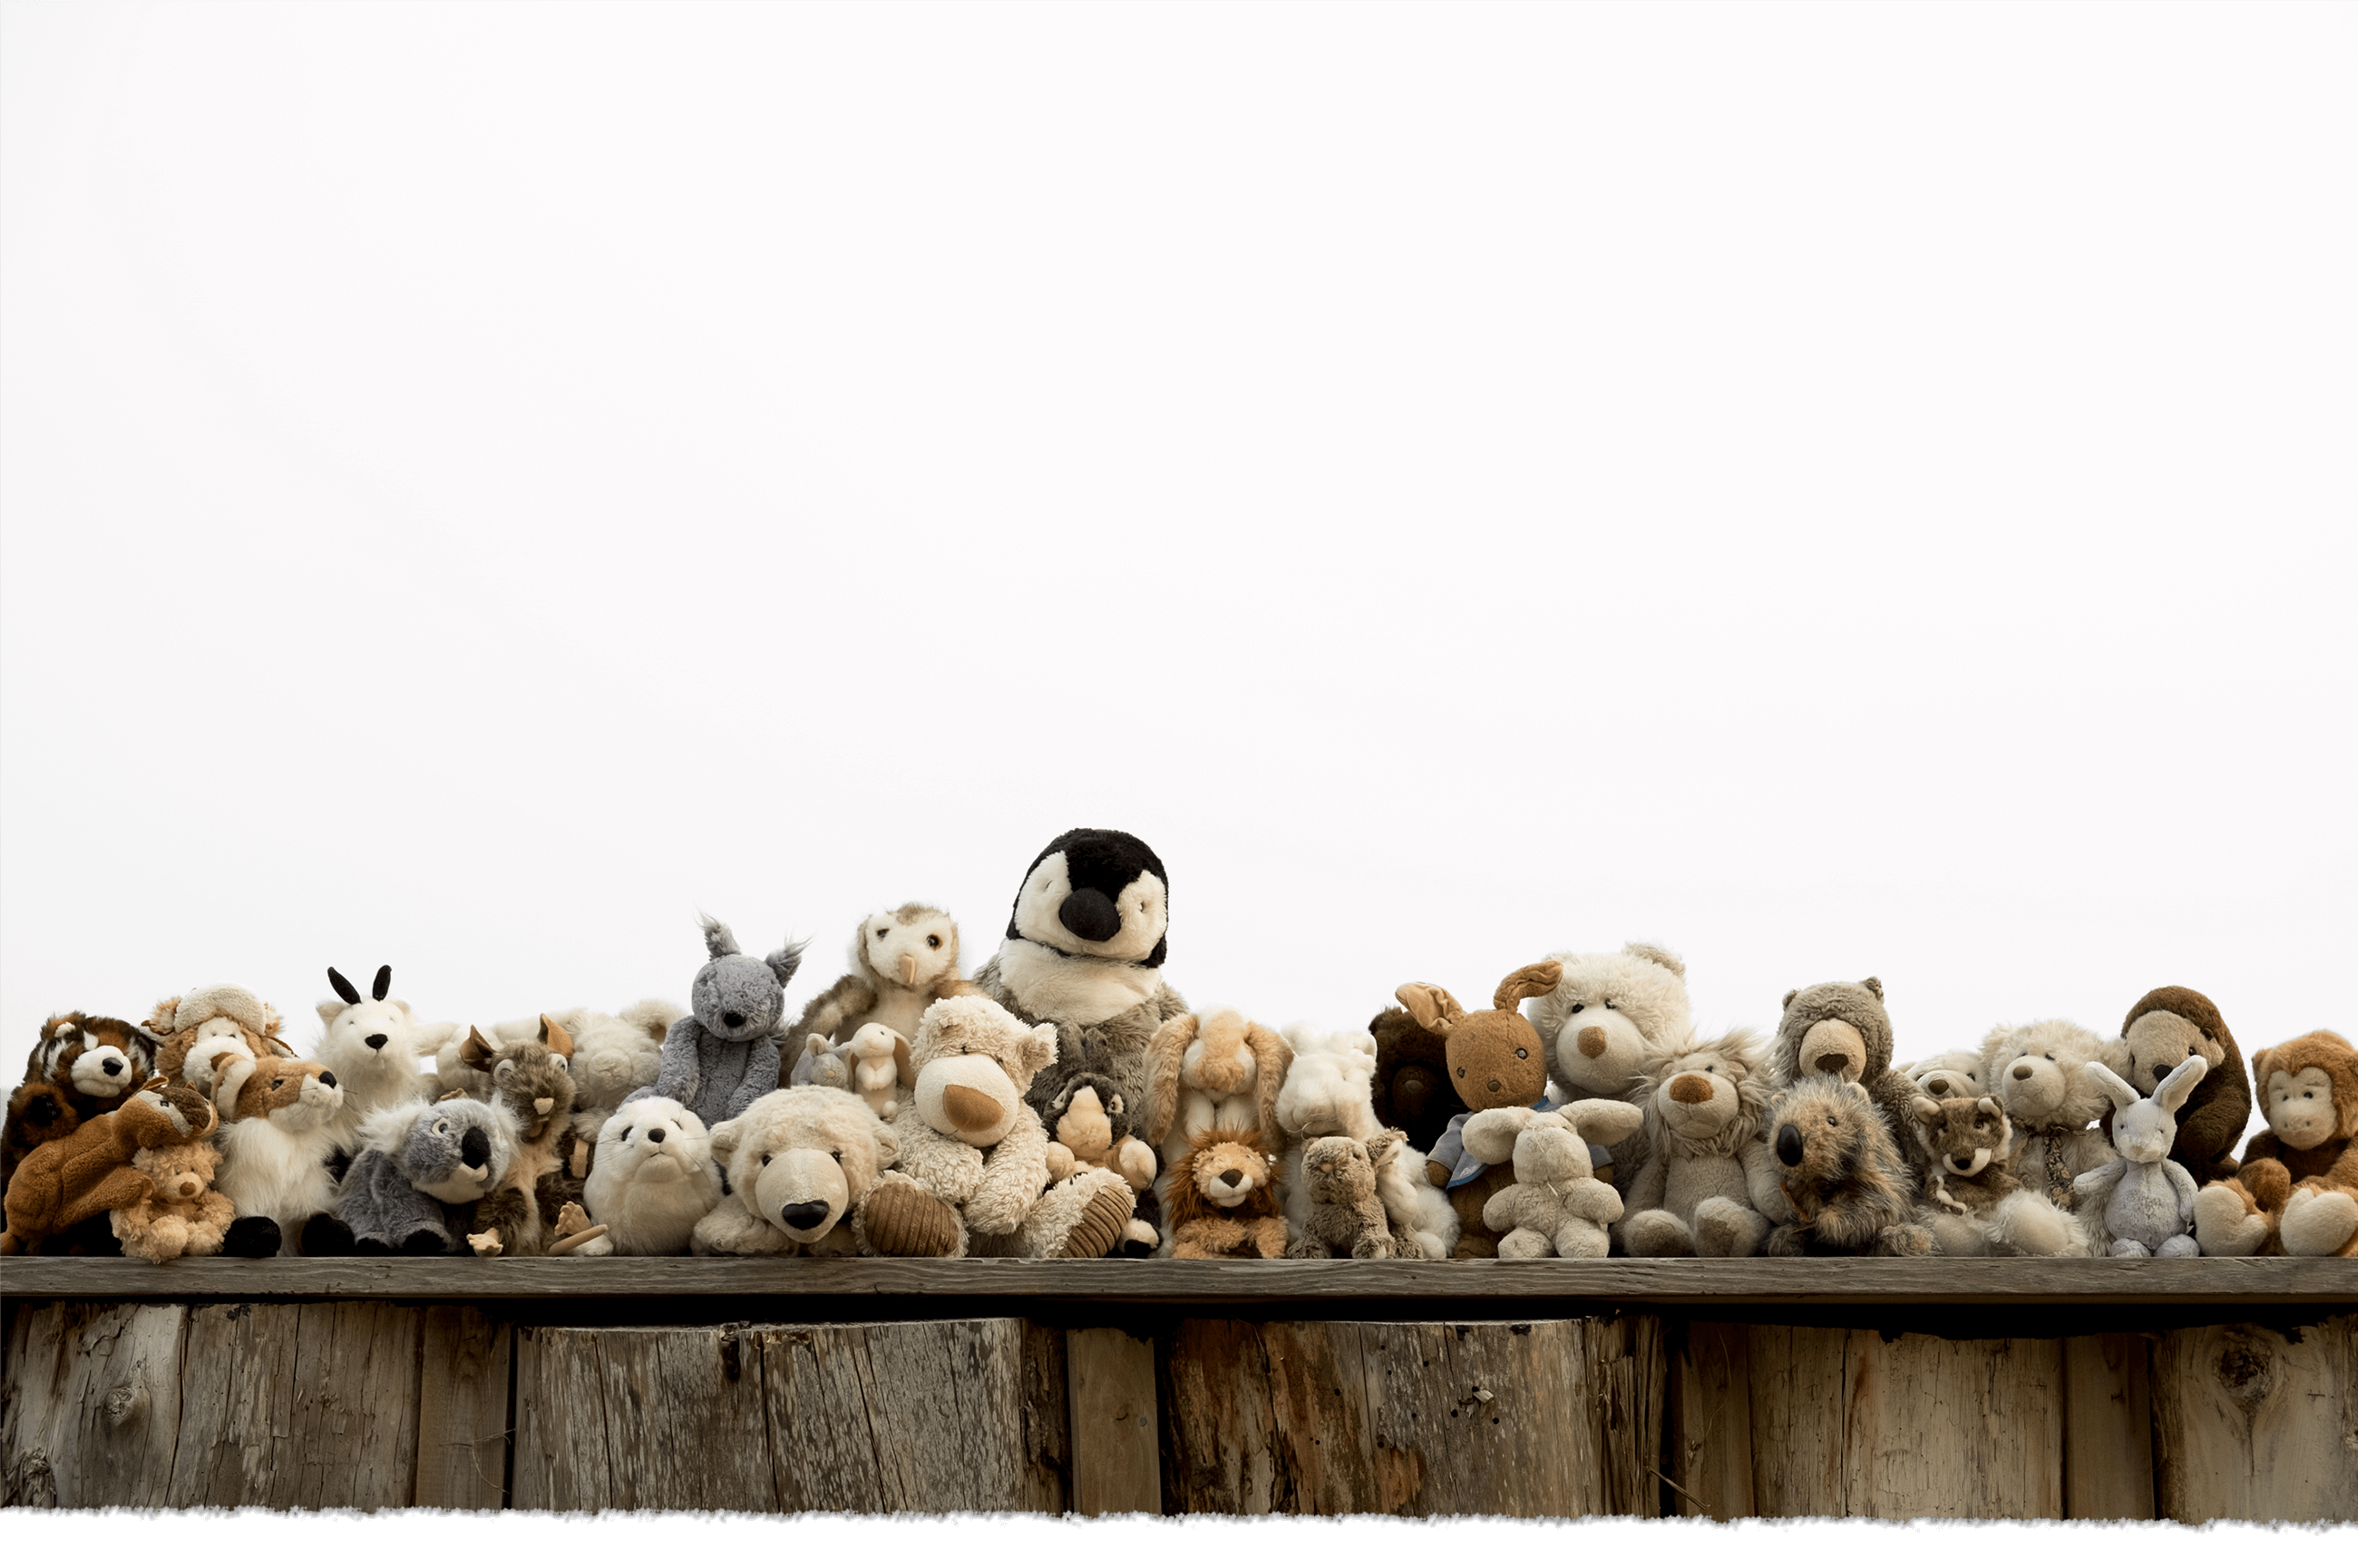 A large group of stuffed animals on top of a log wall